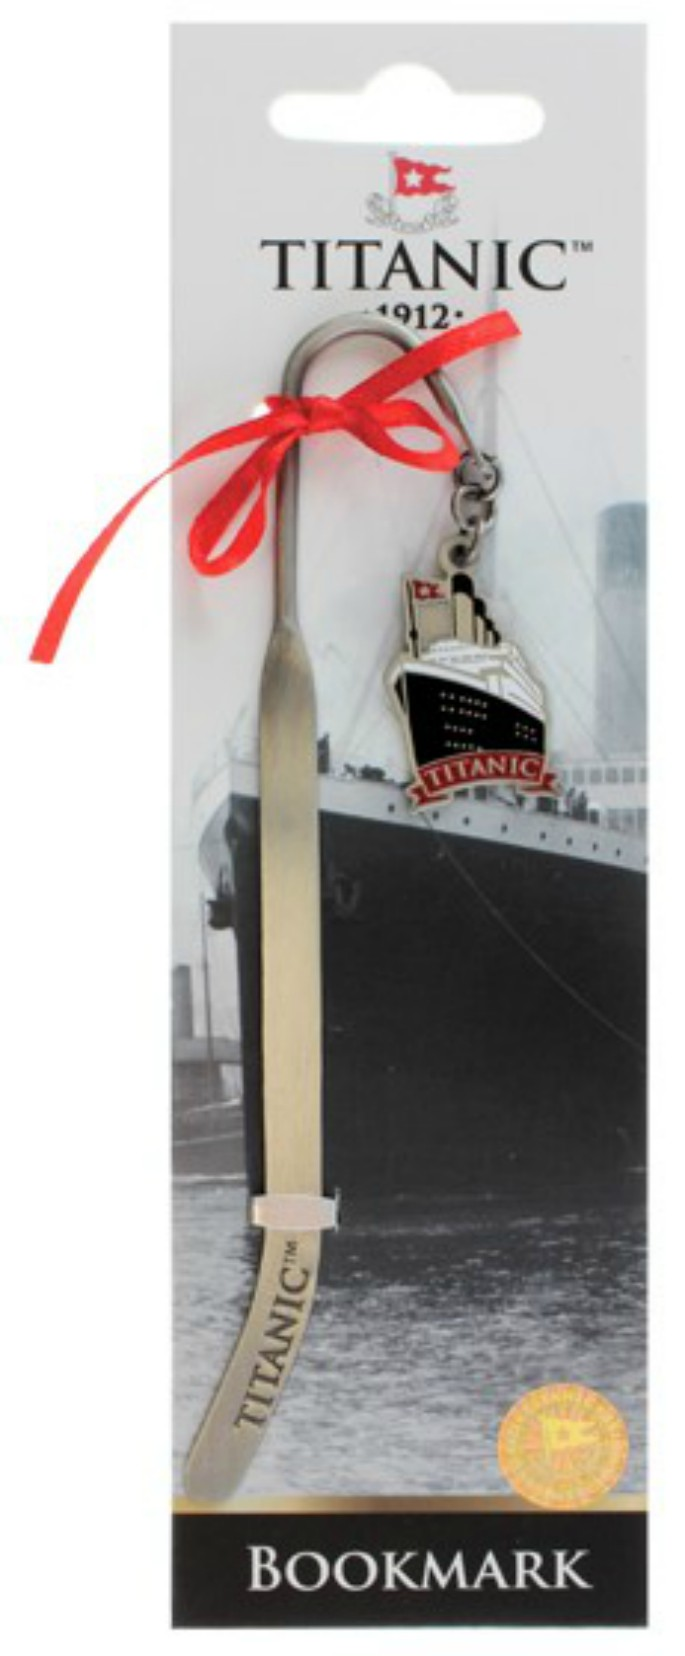 Titanic 1912 Bookmark